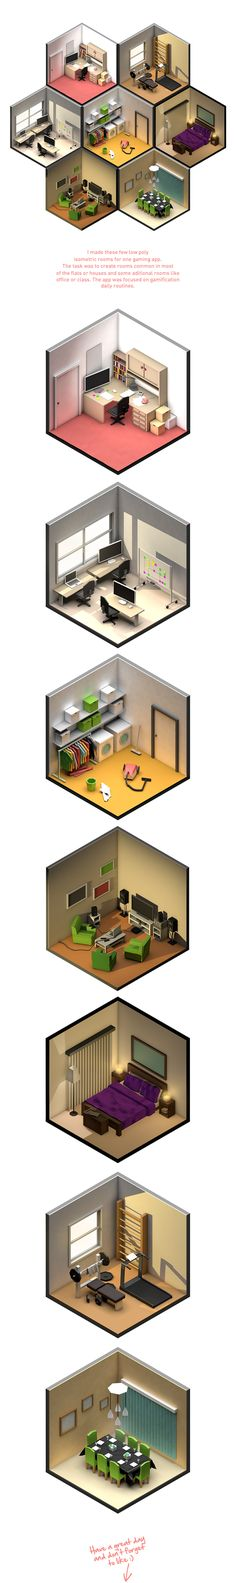 Really a sucker for isometric stuff. Low Poly rooms by Petr Kollarcik, via Behance Low Poly, Isometric Art, Isometric Design, Isometric Shapes, Design 3d, Game Design, 3d Modellierung, 3d Home, Modelos 3d